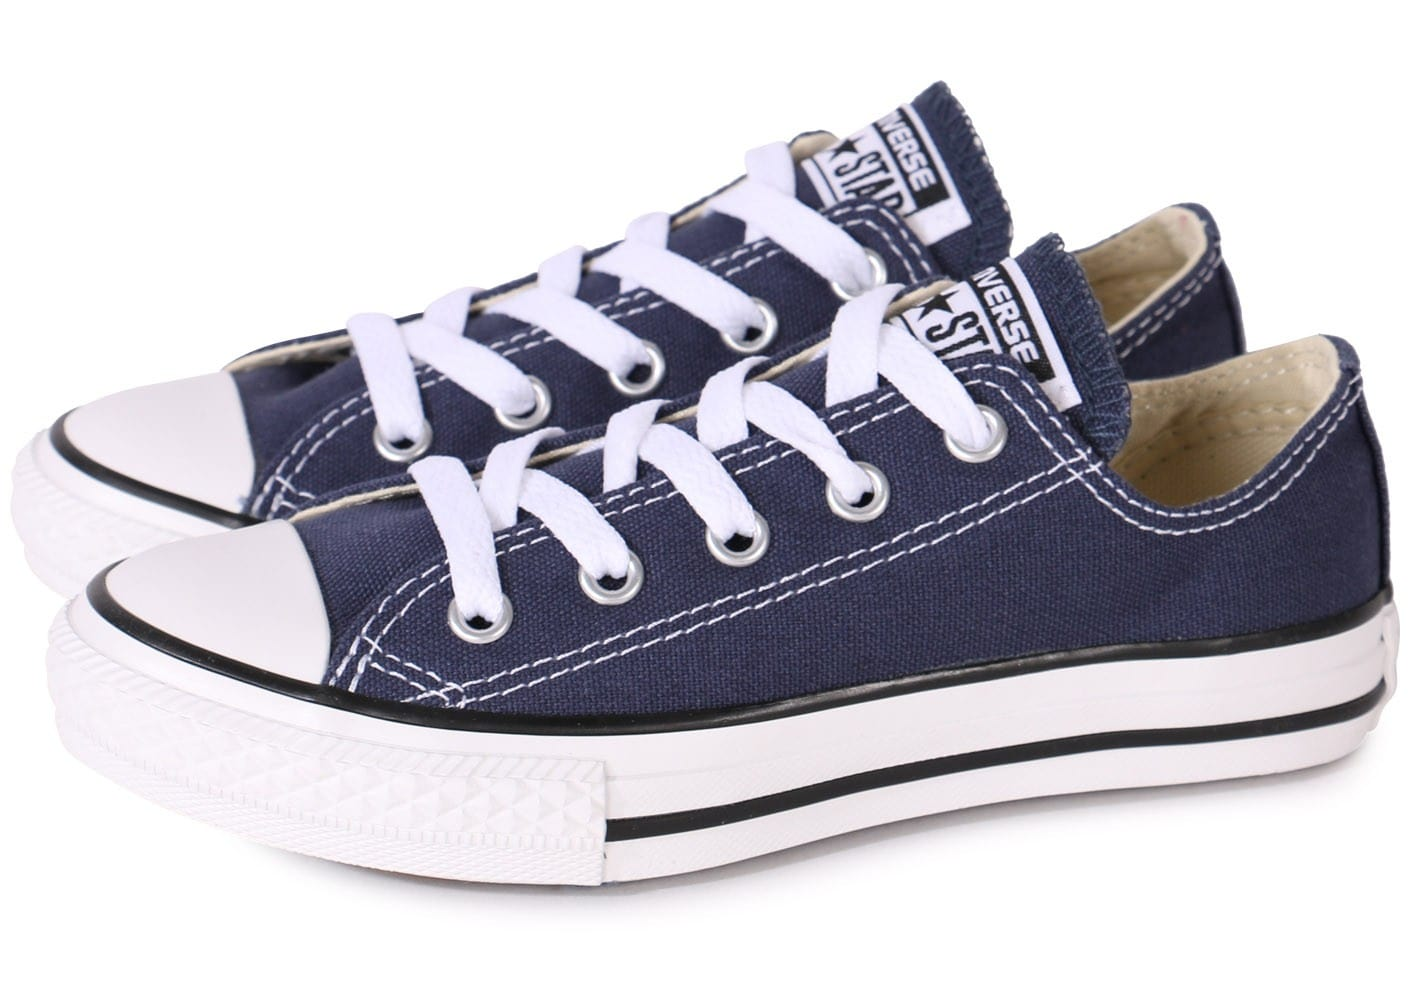 converse chuck taylor all star bleu marine enfant chaussures black friday chausport. Black Bedroom Furniture Sets. Home Design Ideas